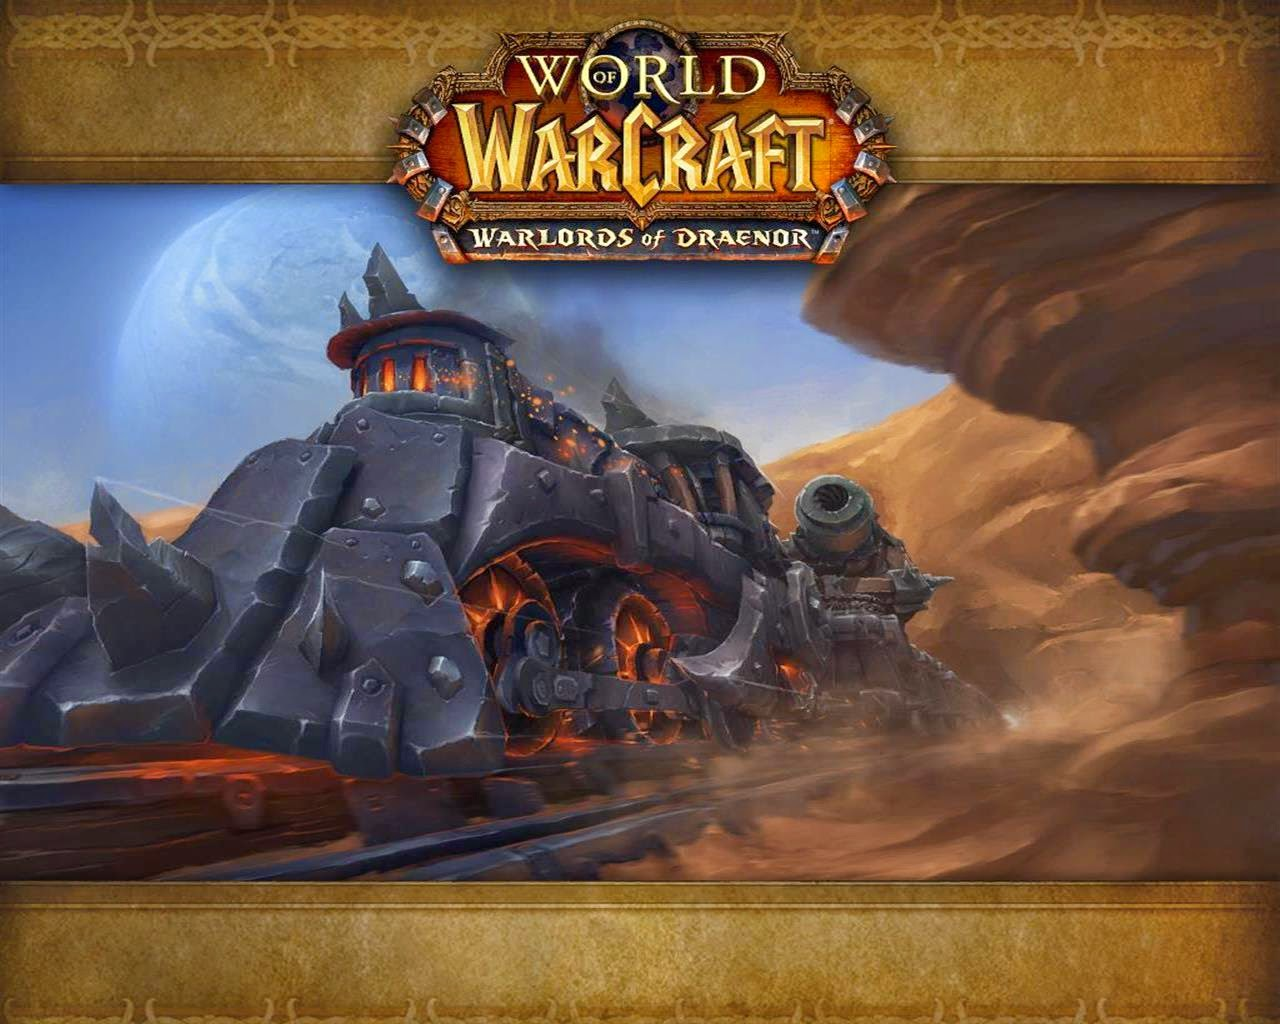 Master of World of Warcraft : All Aboard the Hype Train!